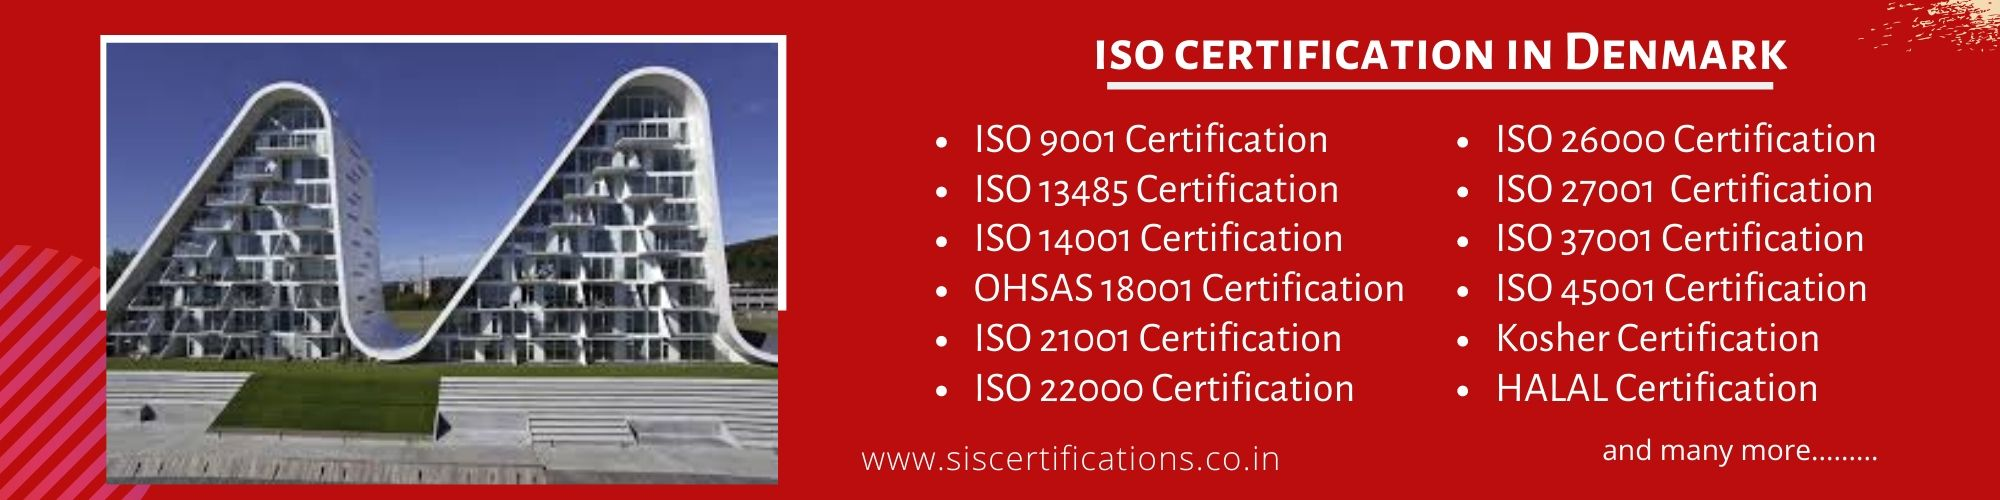 ISO Certification in Denmark